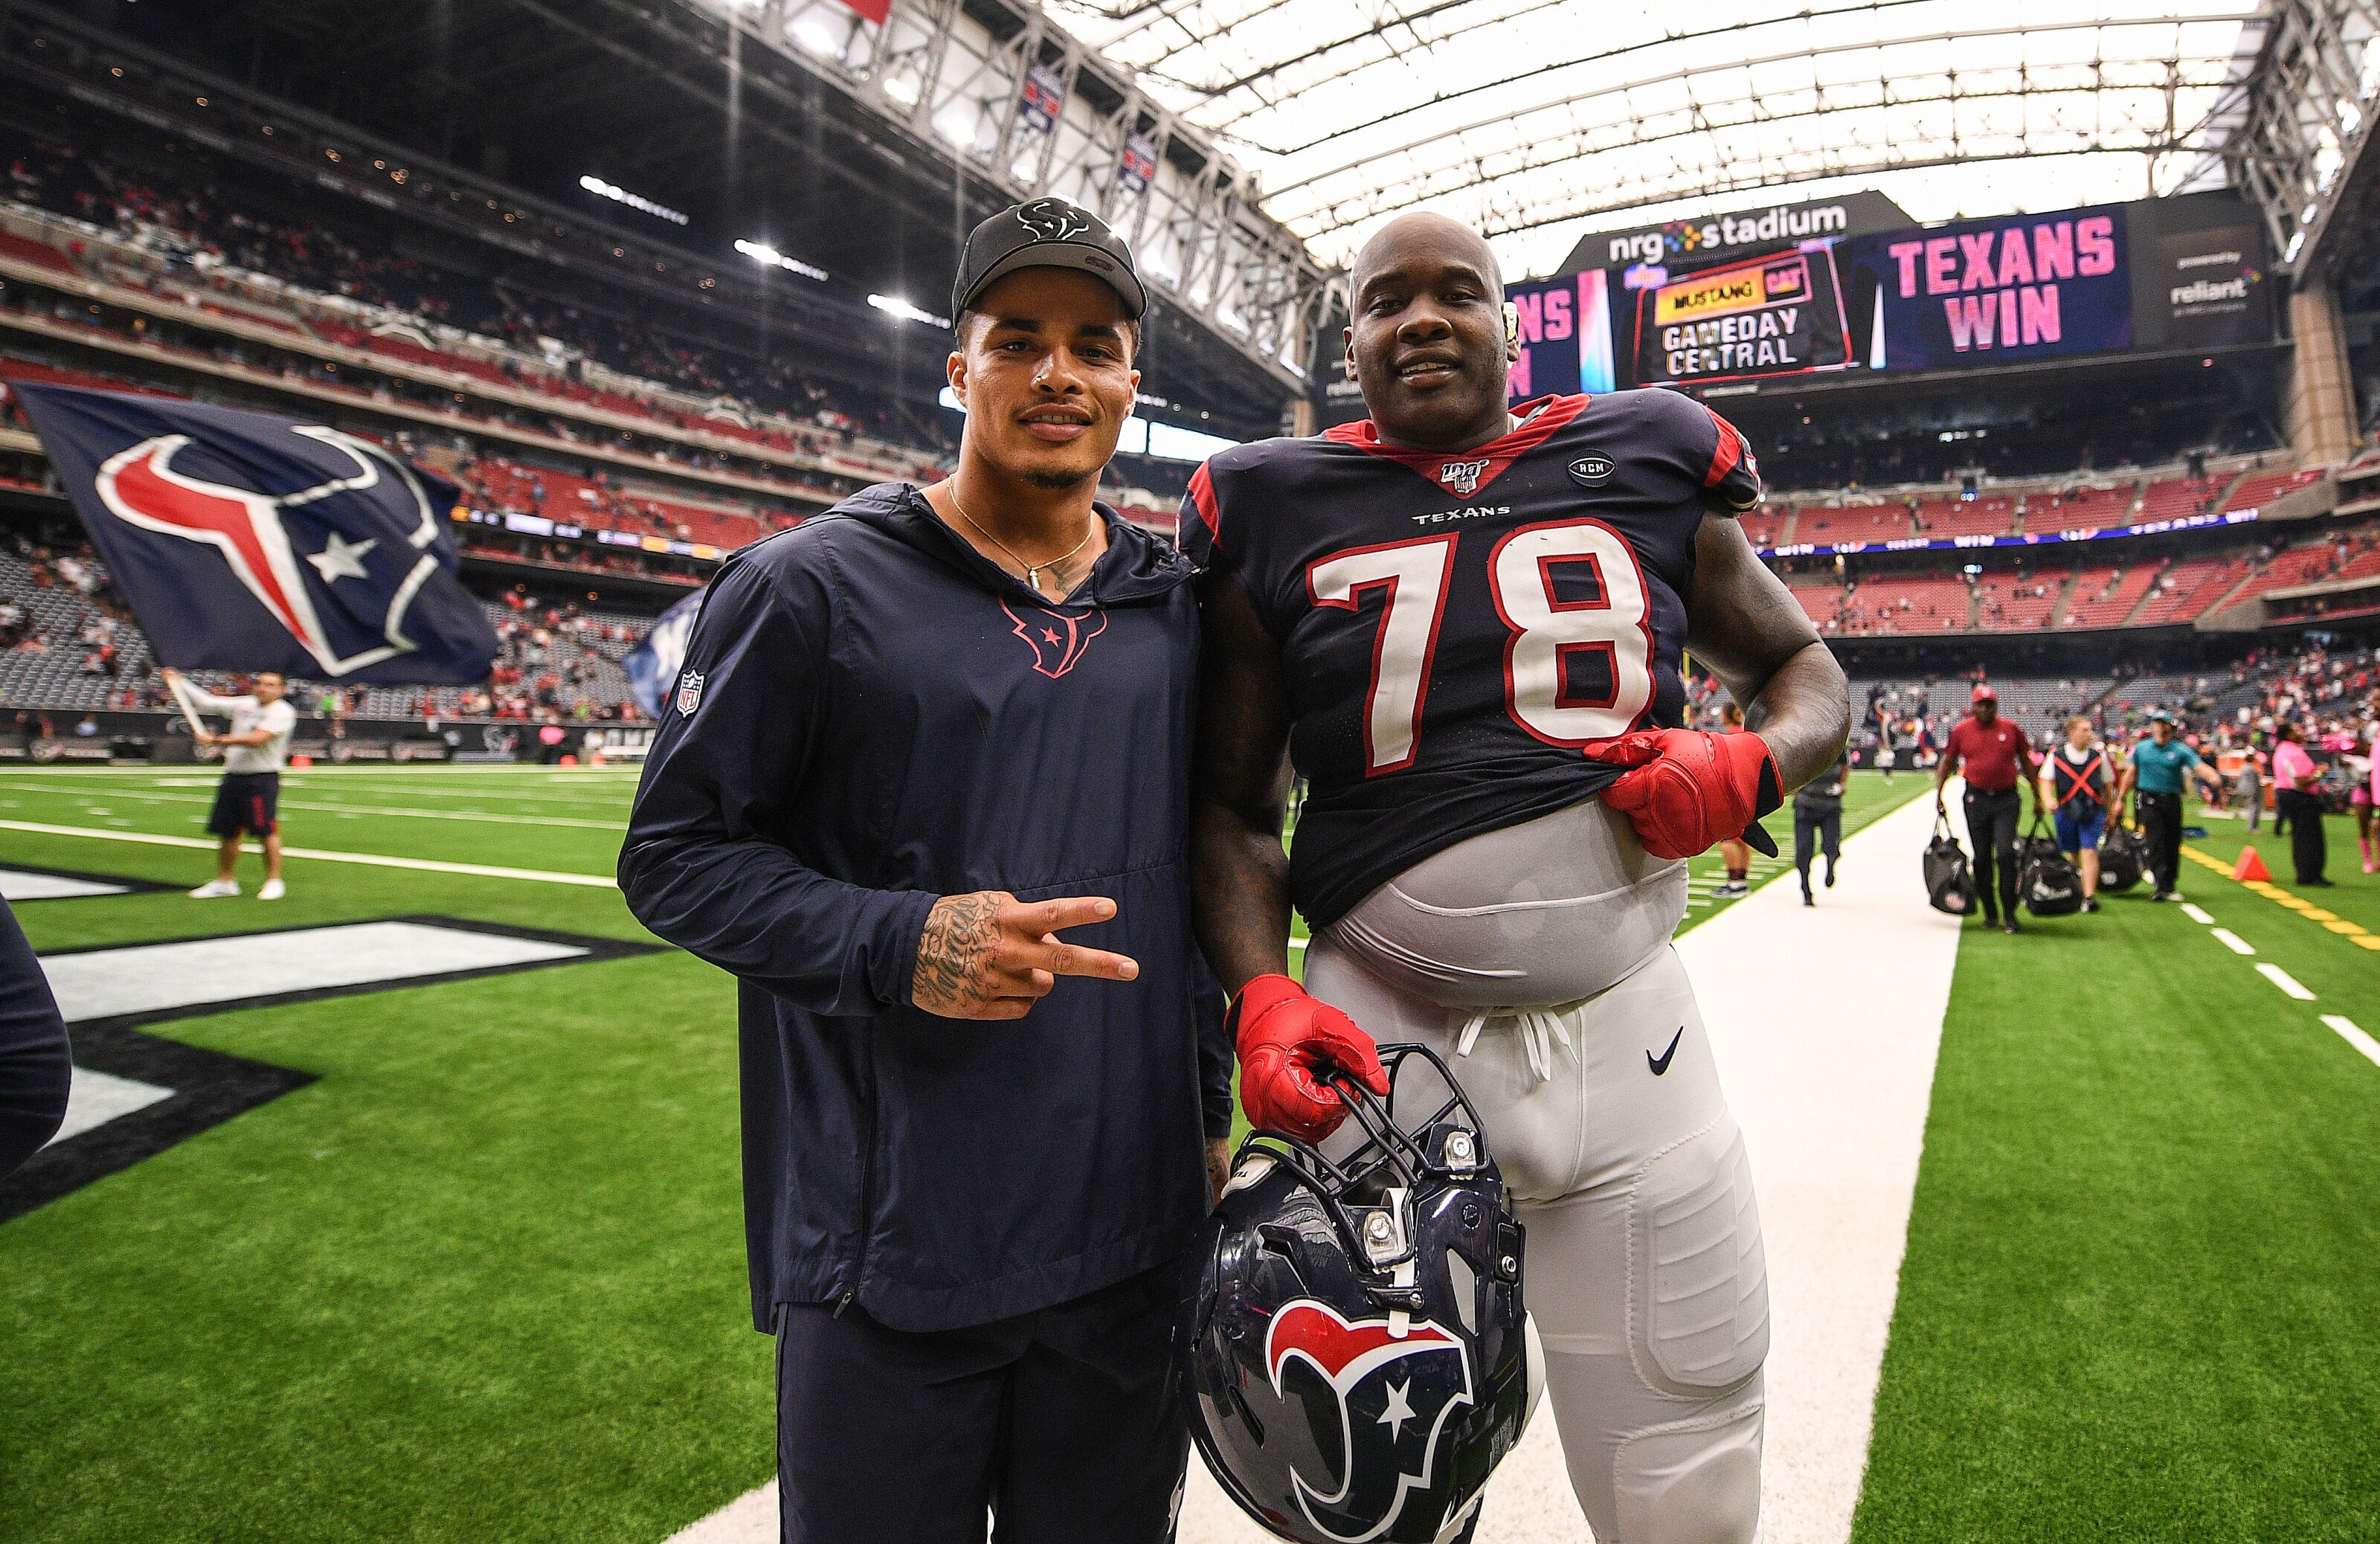 Houston Texans: The future looks bright after the Miami Dolphins trade